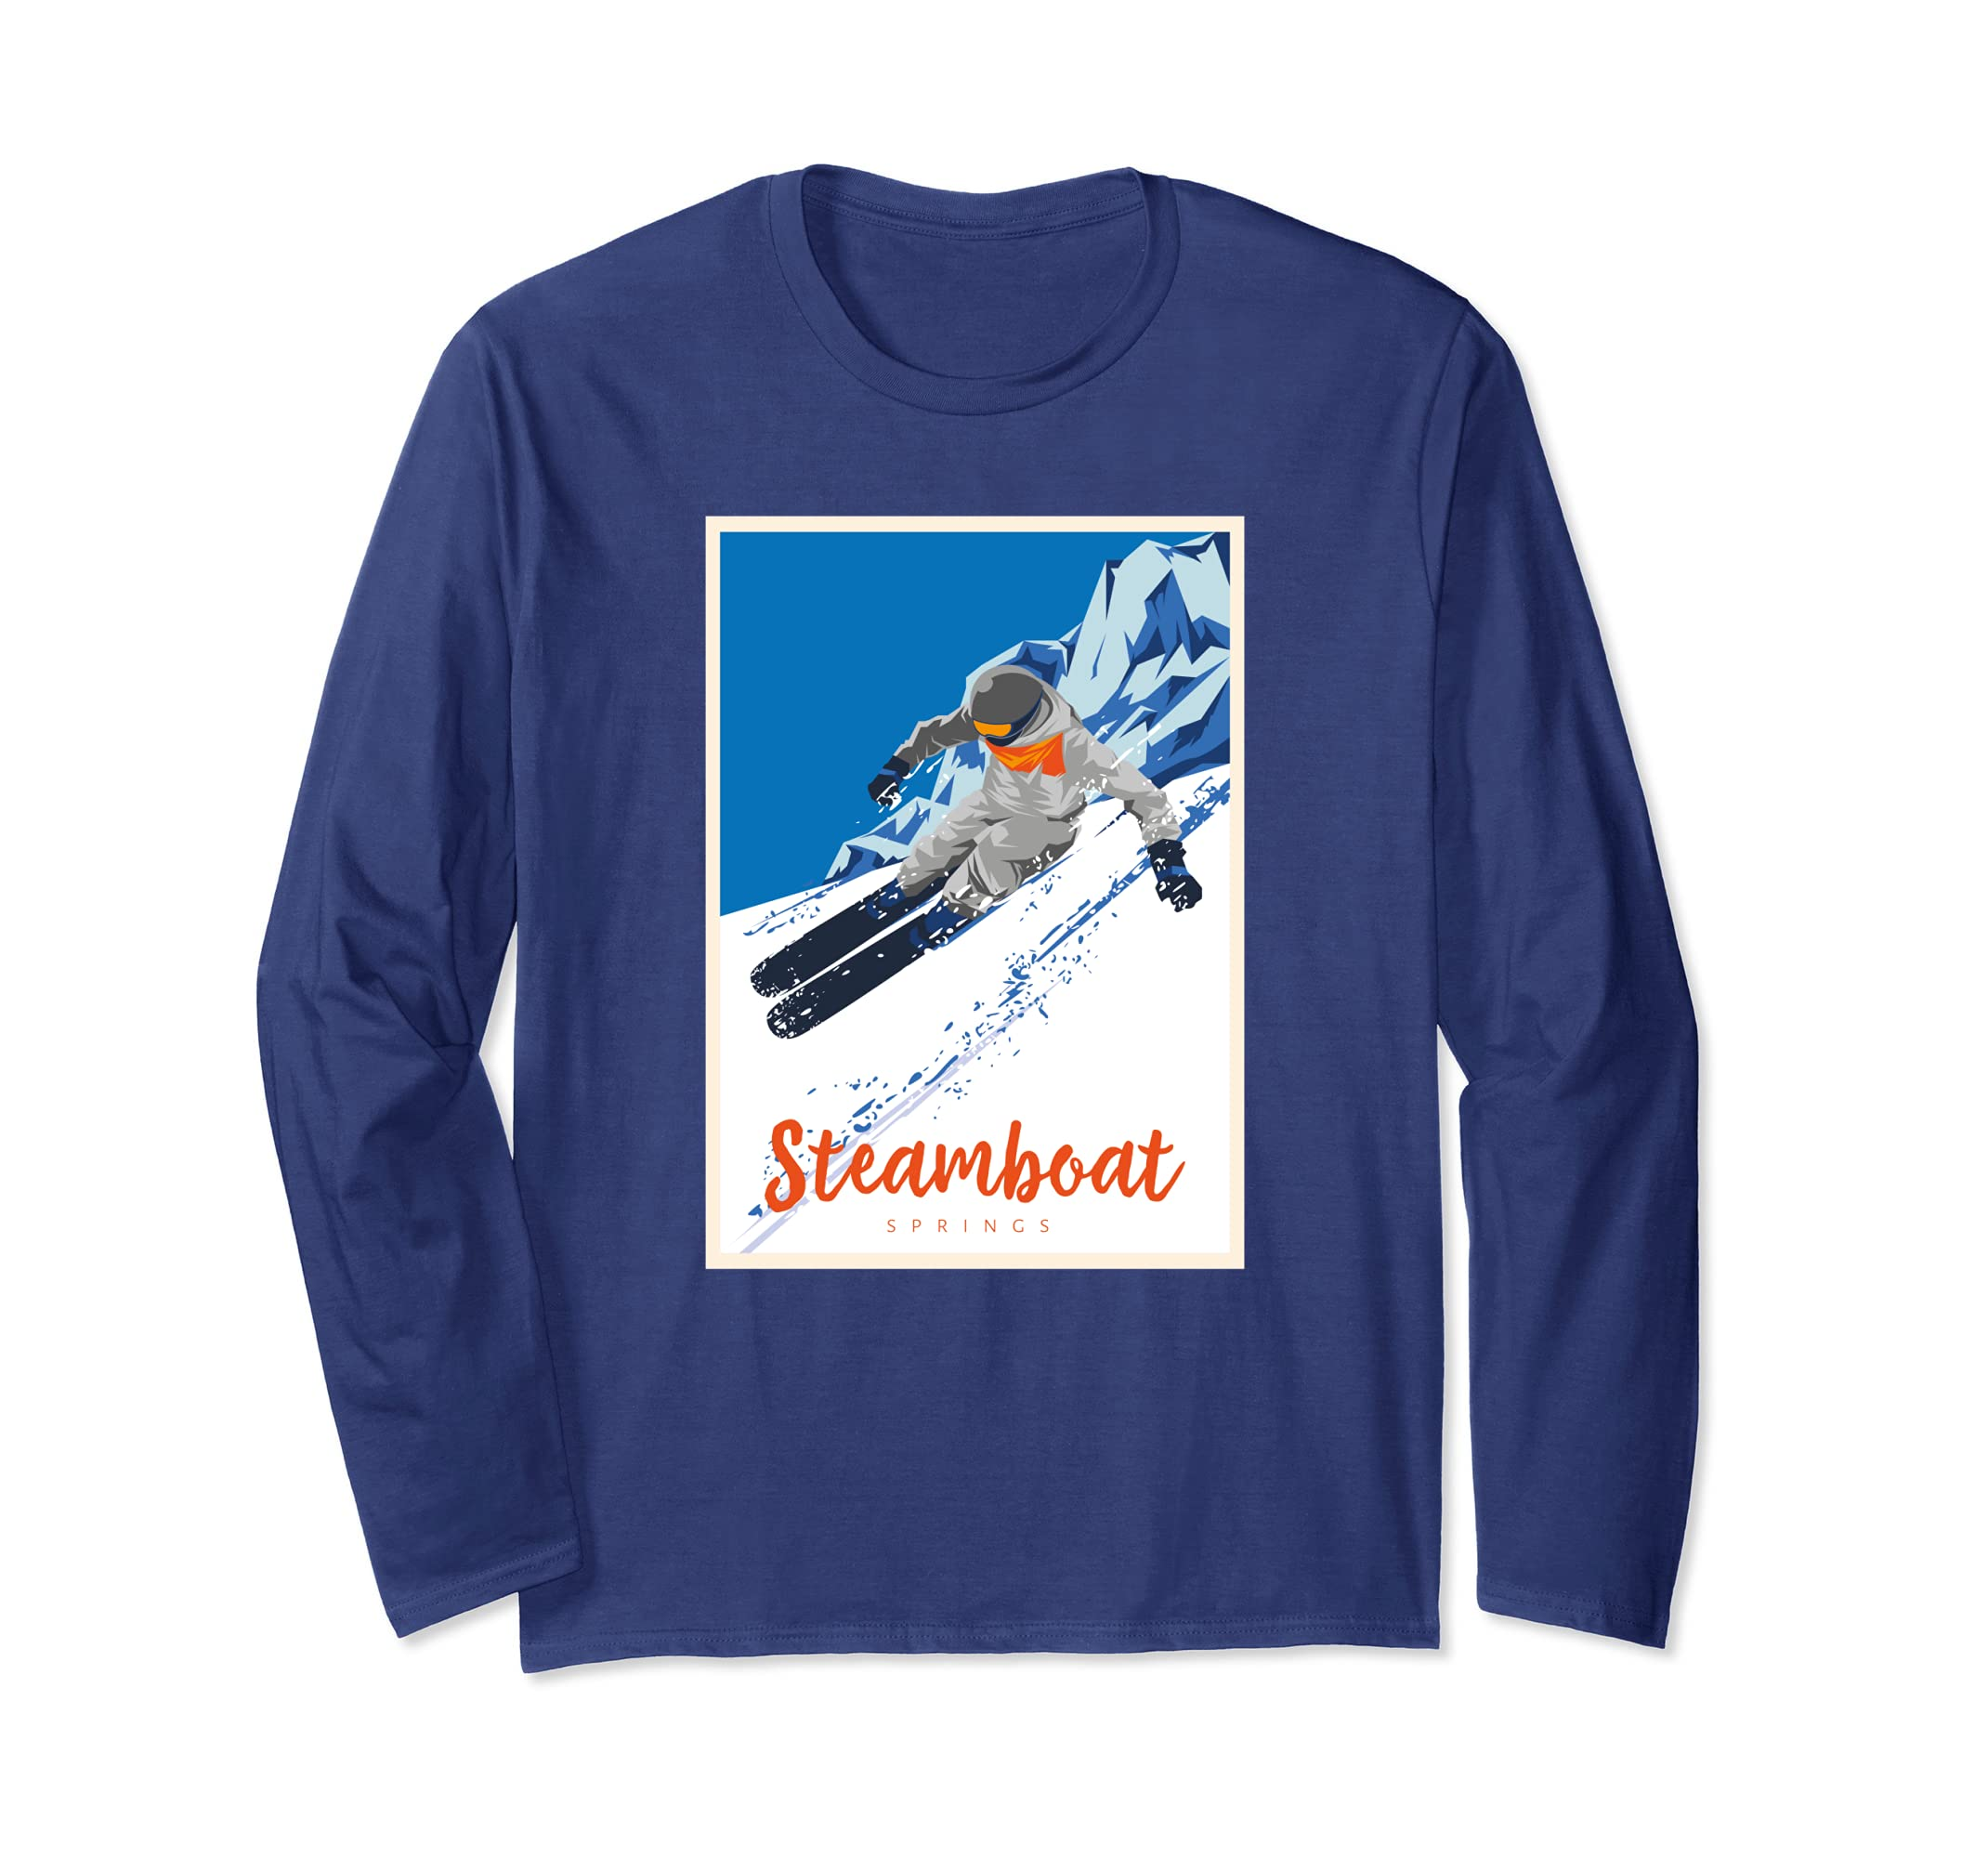 b679ce981f Amazon.com  Skiing Shirt Ski Resort Steamboat Springs CO Snow Gift Tee   Clothing